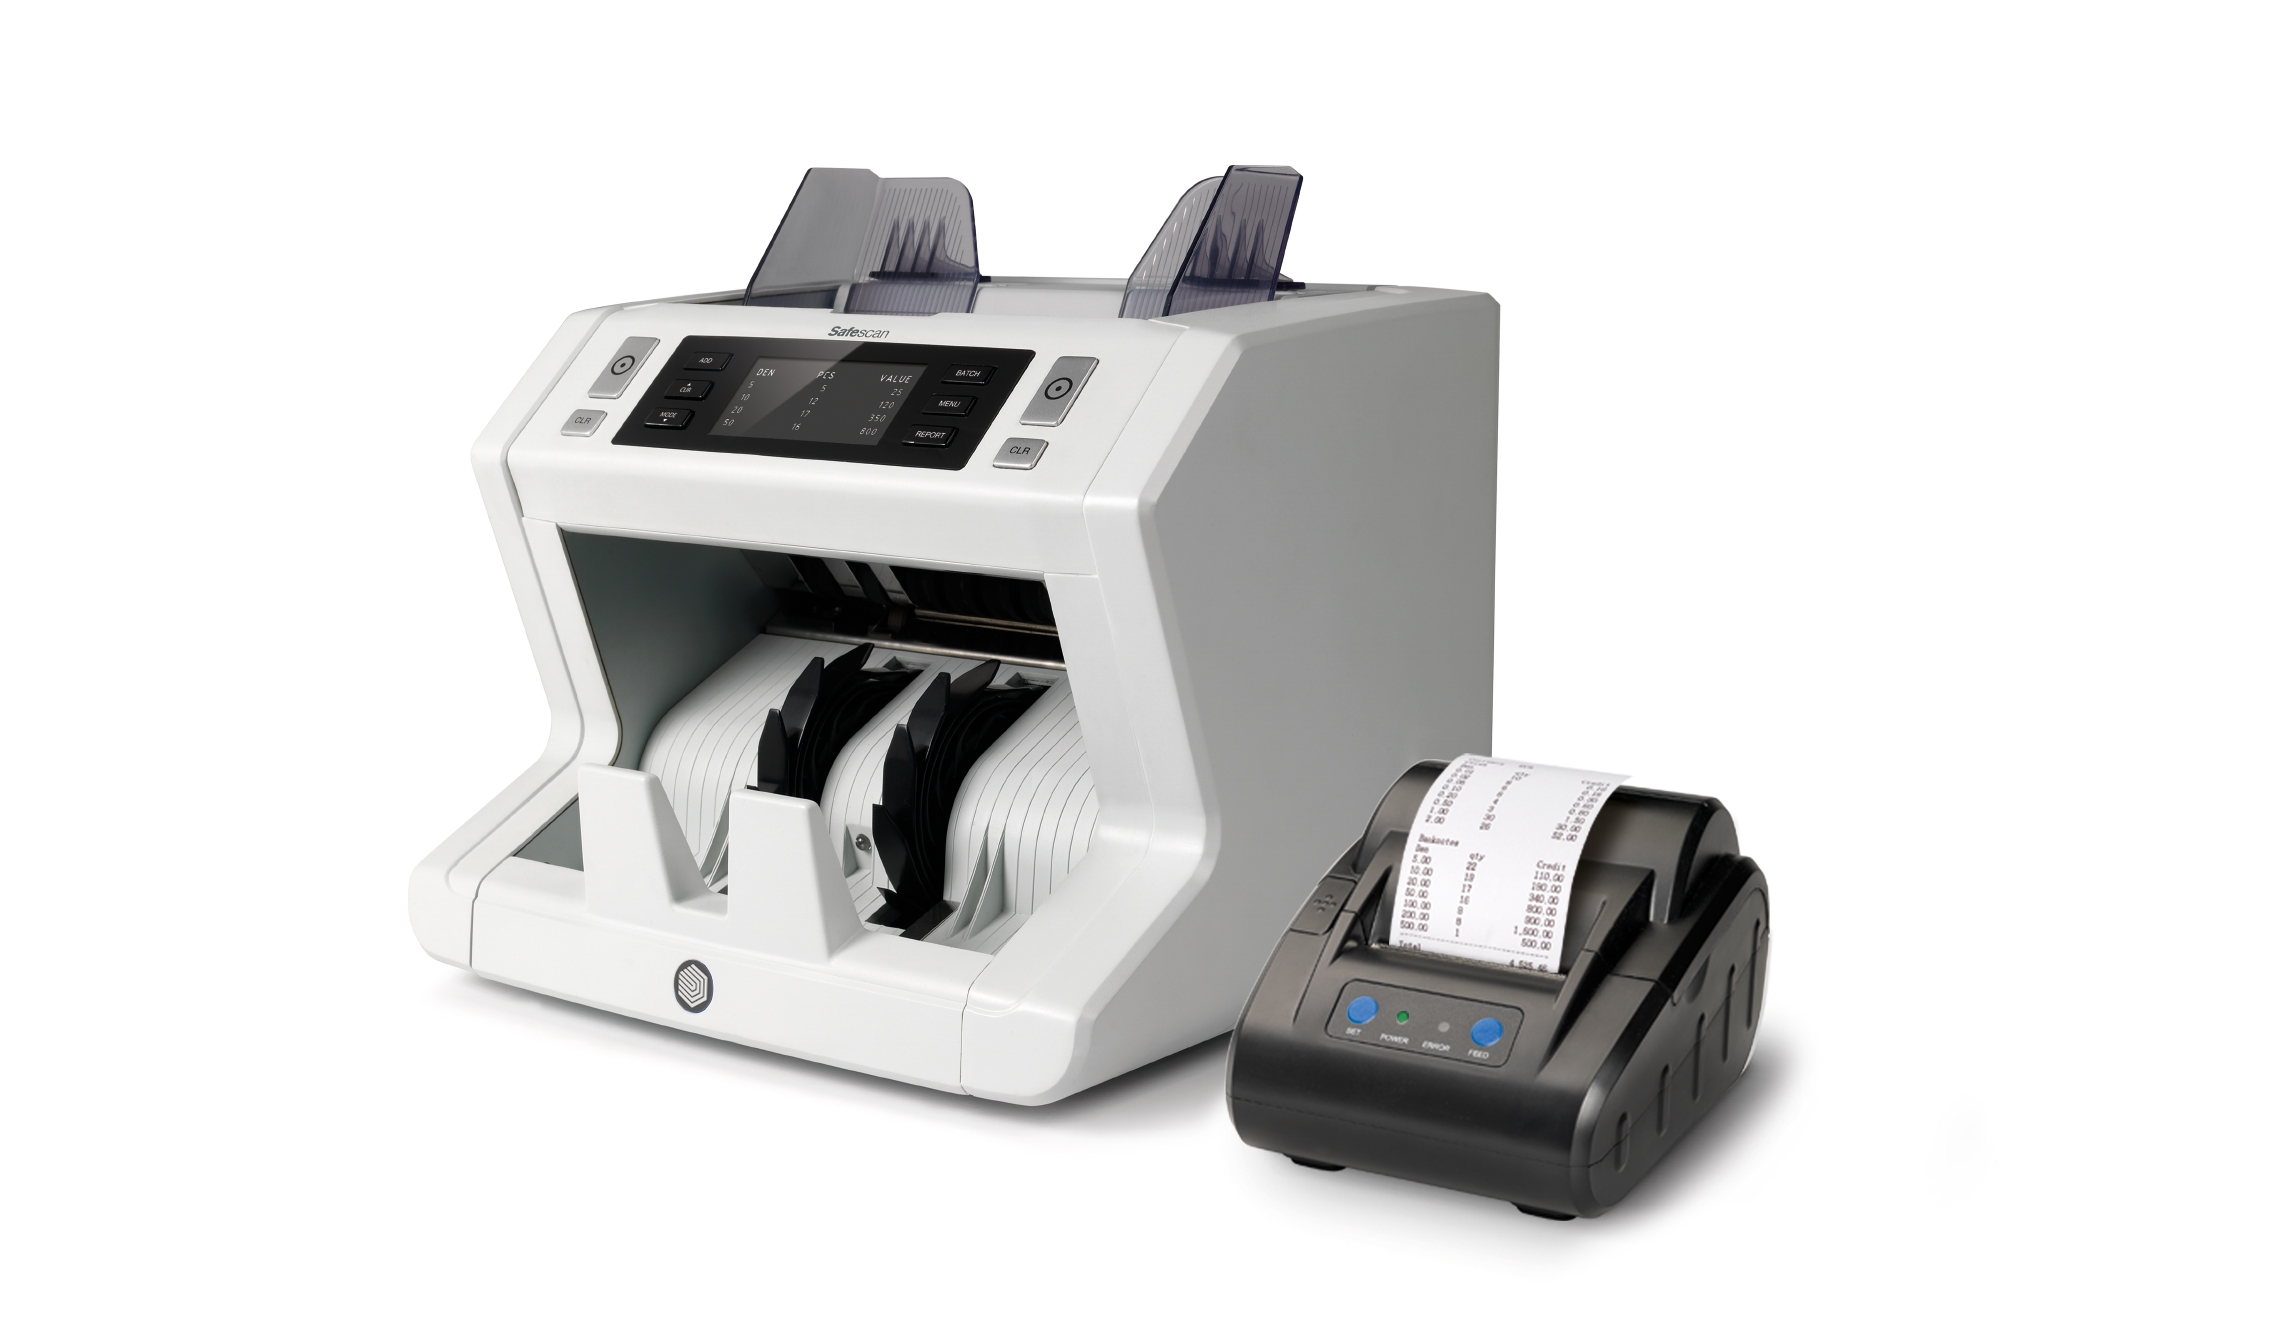 safescan-tp-230-thermische-printer